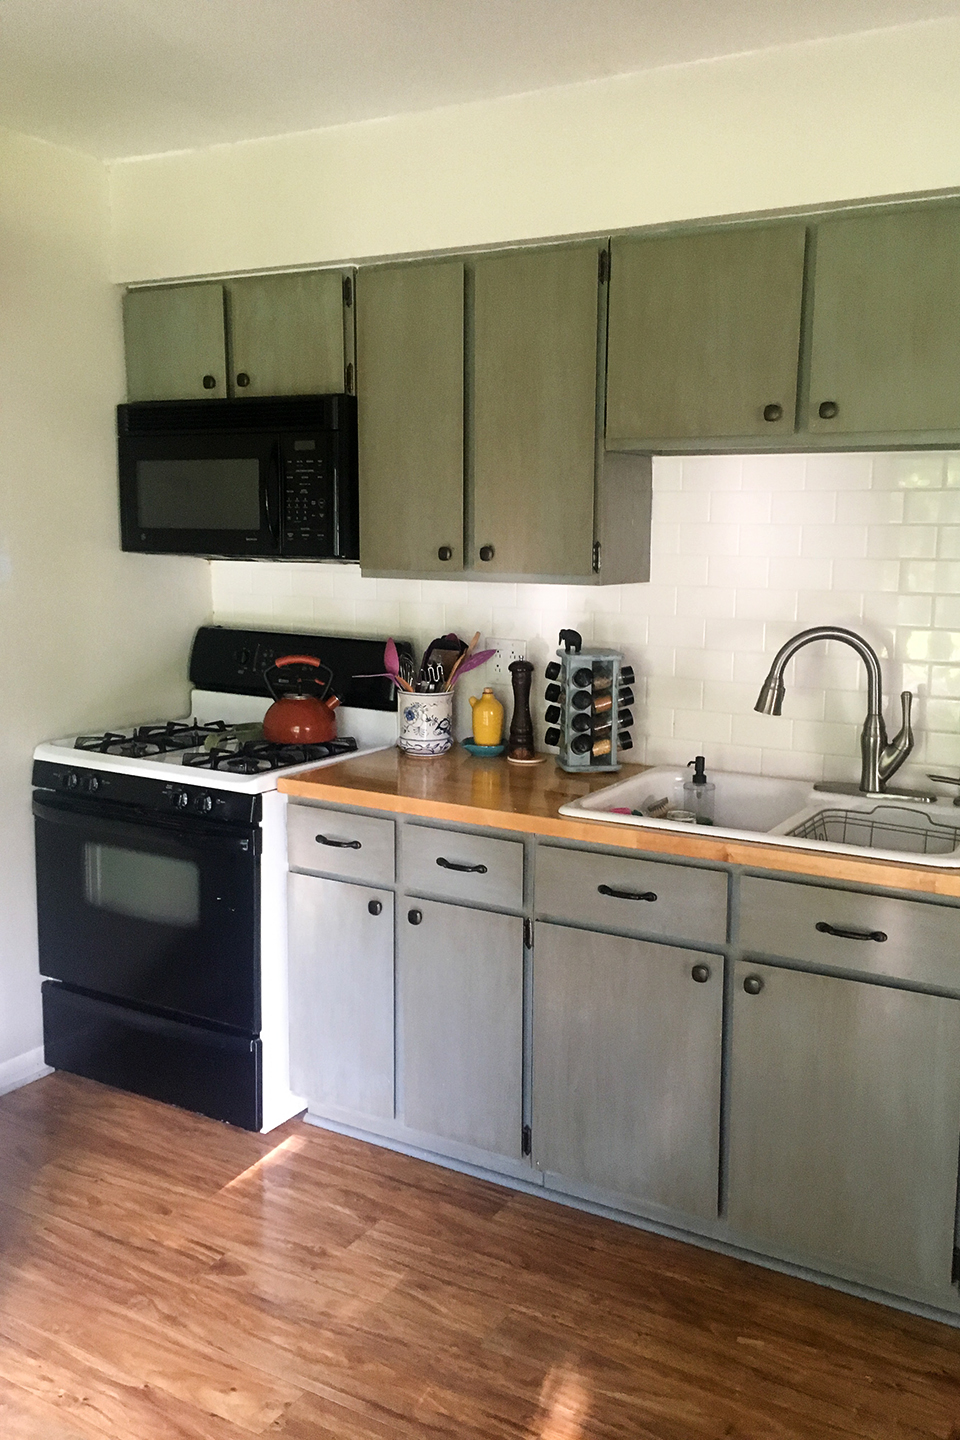 Kitchen Remodel on a Budget: 5 Low-Cost Ideas to Help You ... on Kitchen Redesign Ideas  id=90833